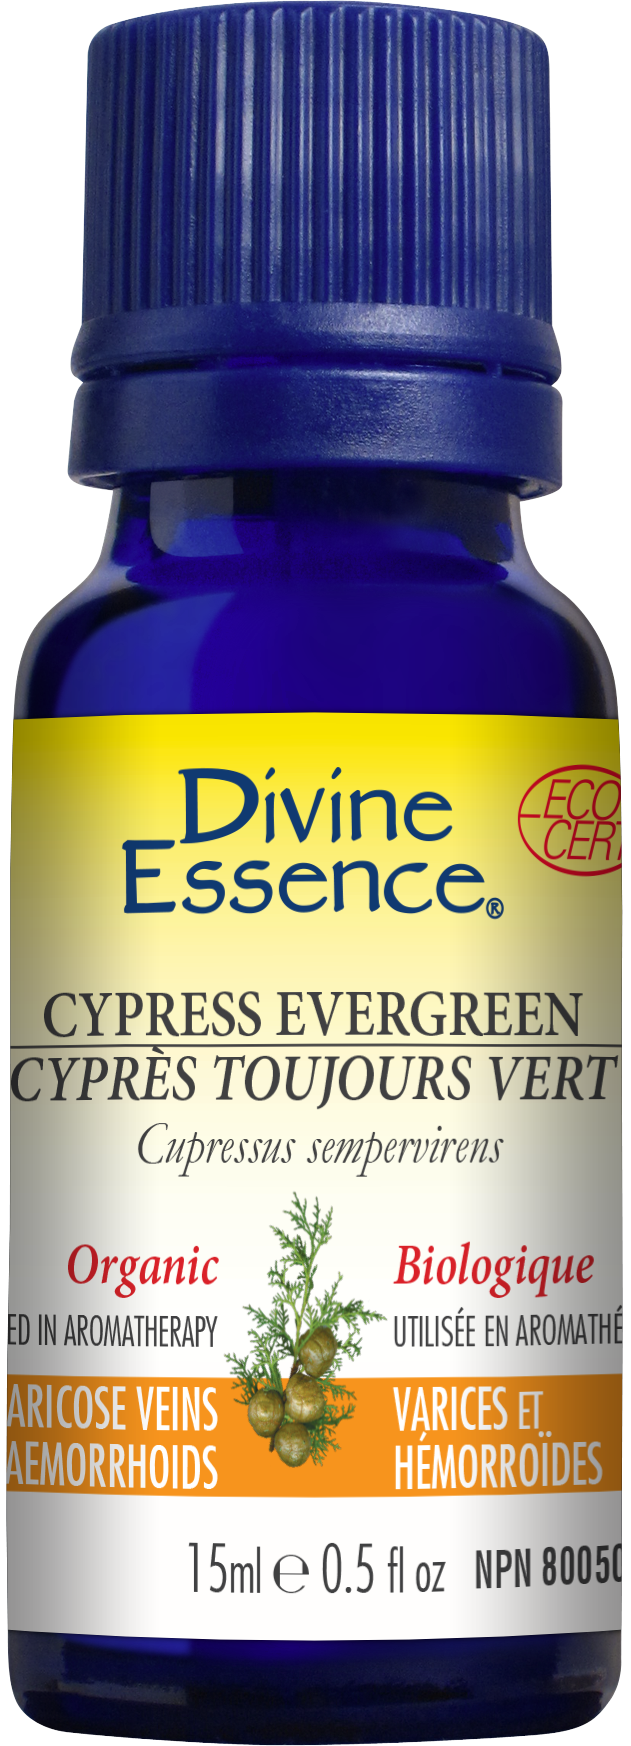 Cypress Evergreen 15ml